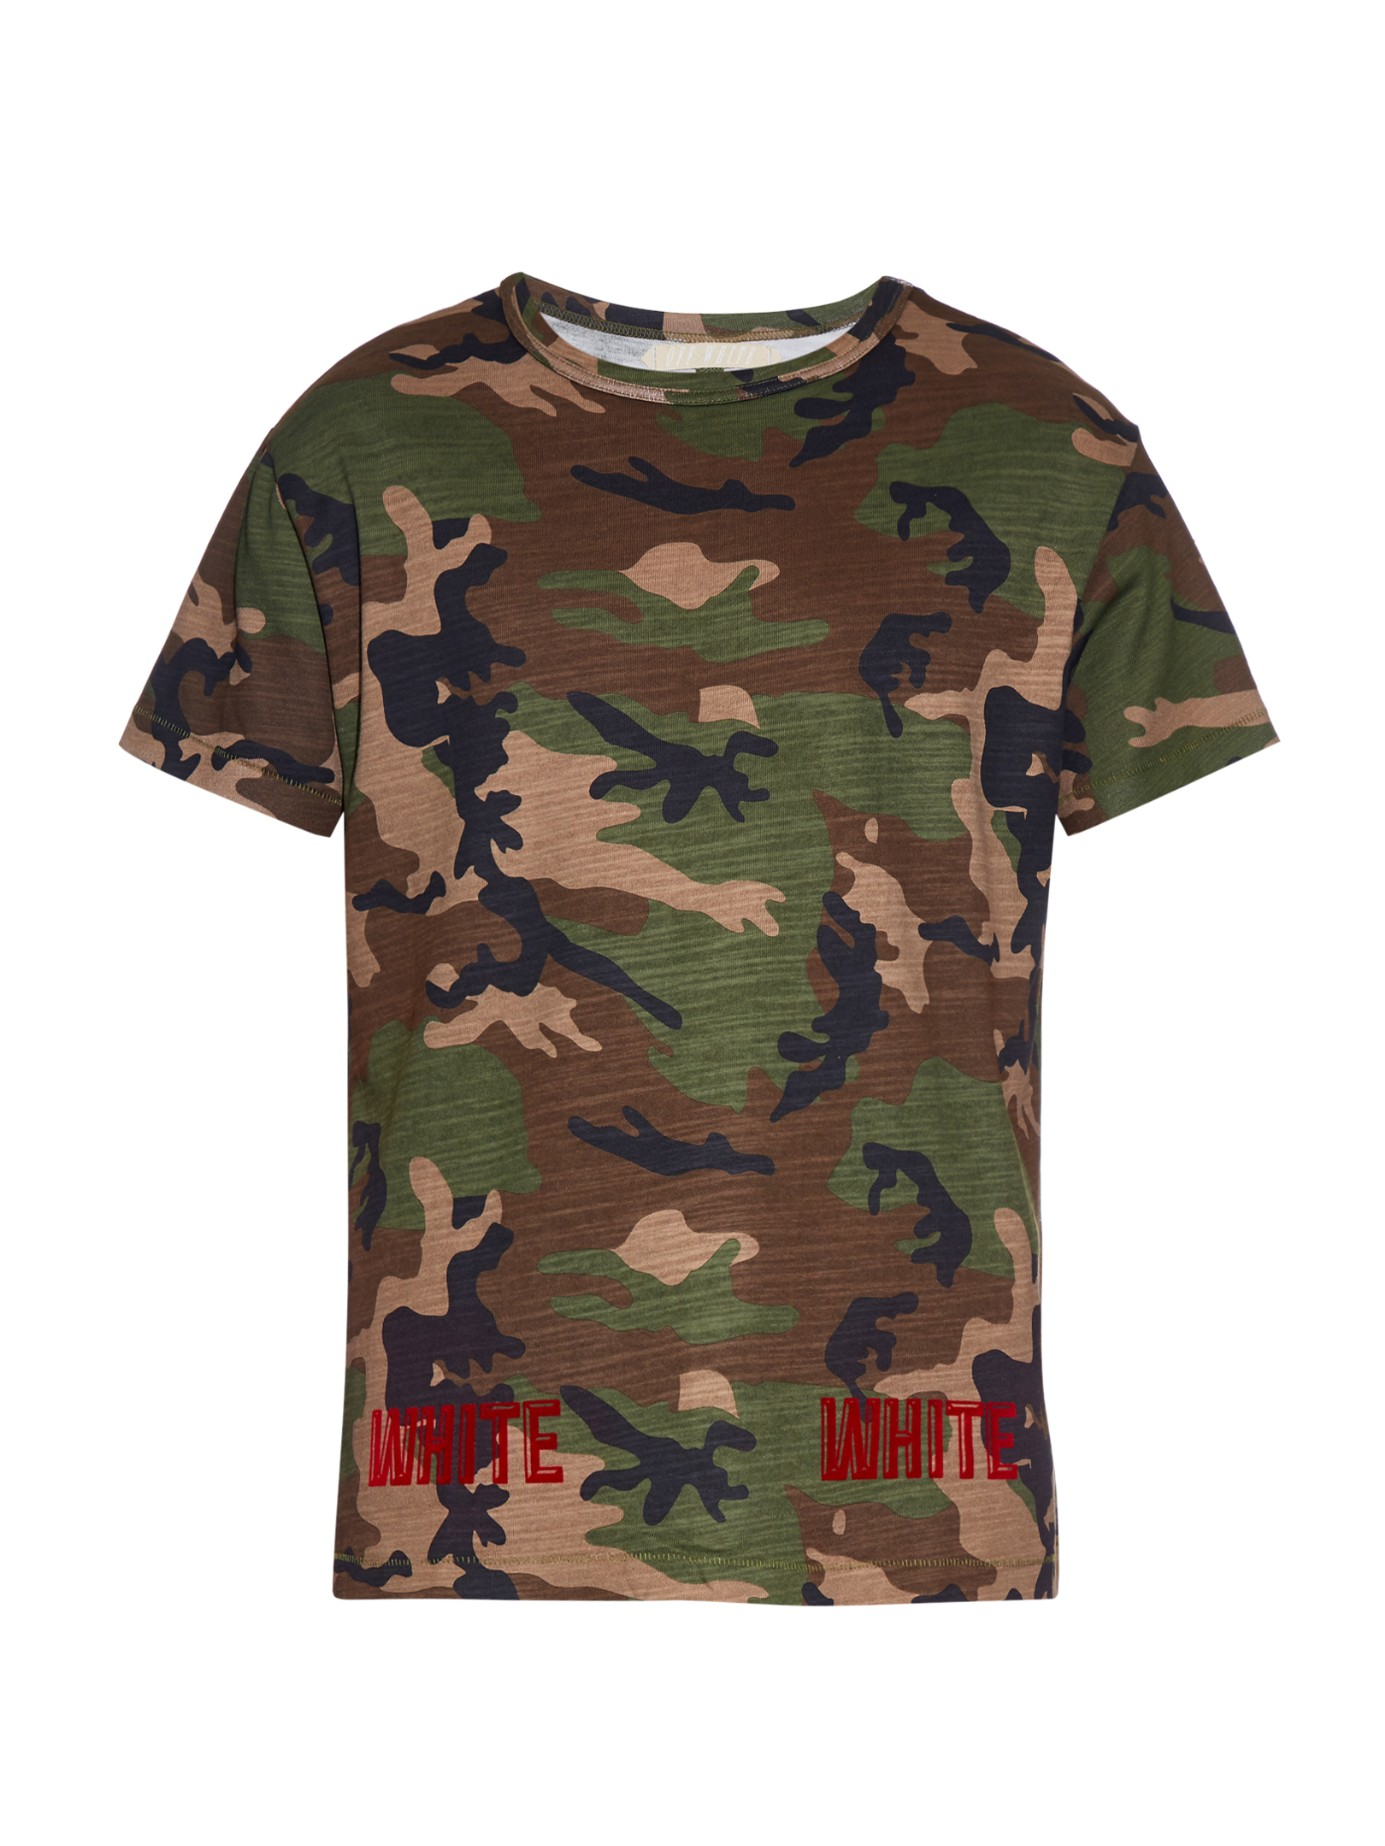 42 design ideas for spray paint shirts guide patterns for Camouflage t shirt design